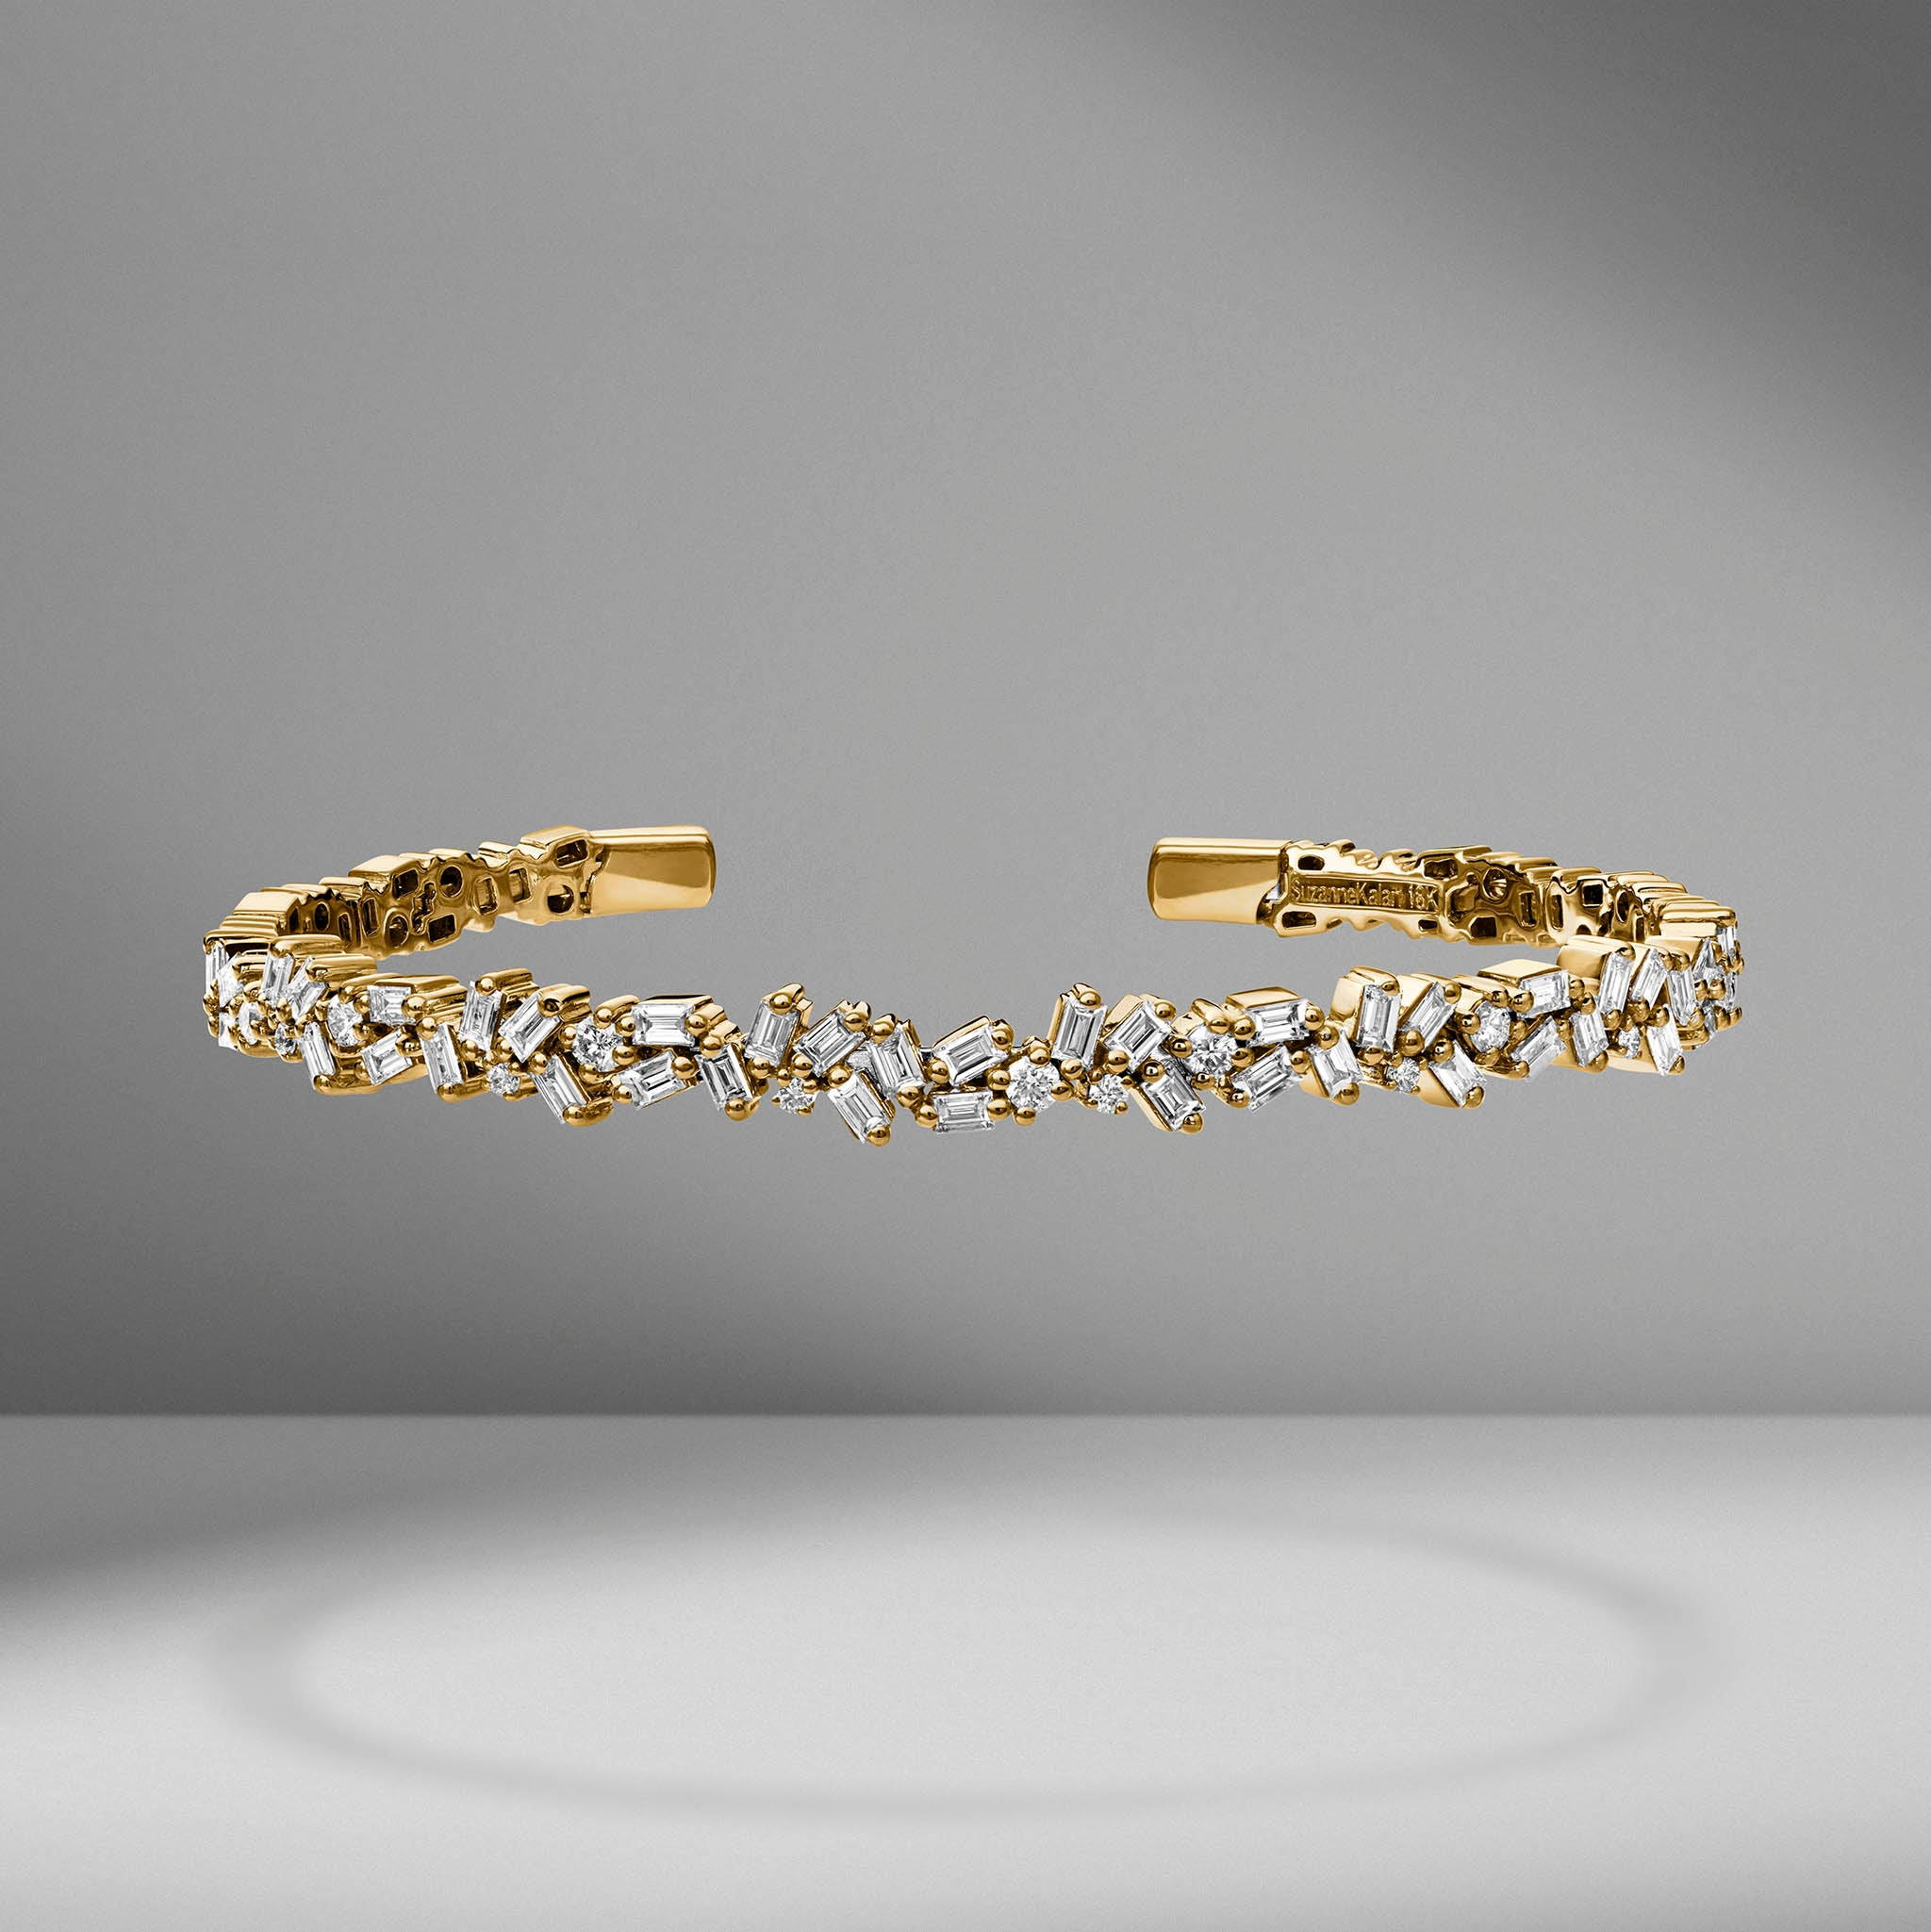 Fireworks Sparkler Diamond Bangle